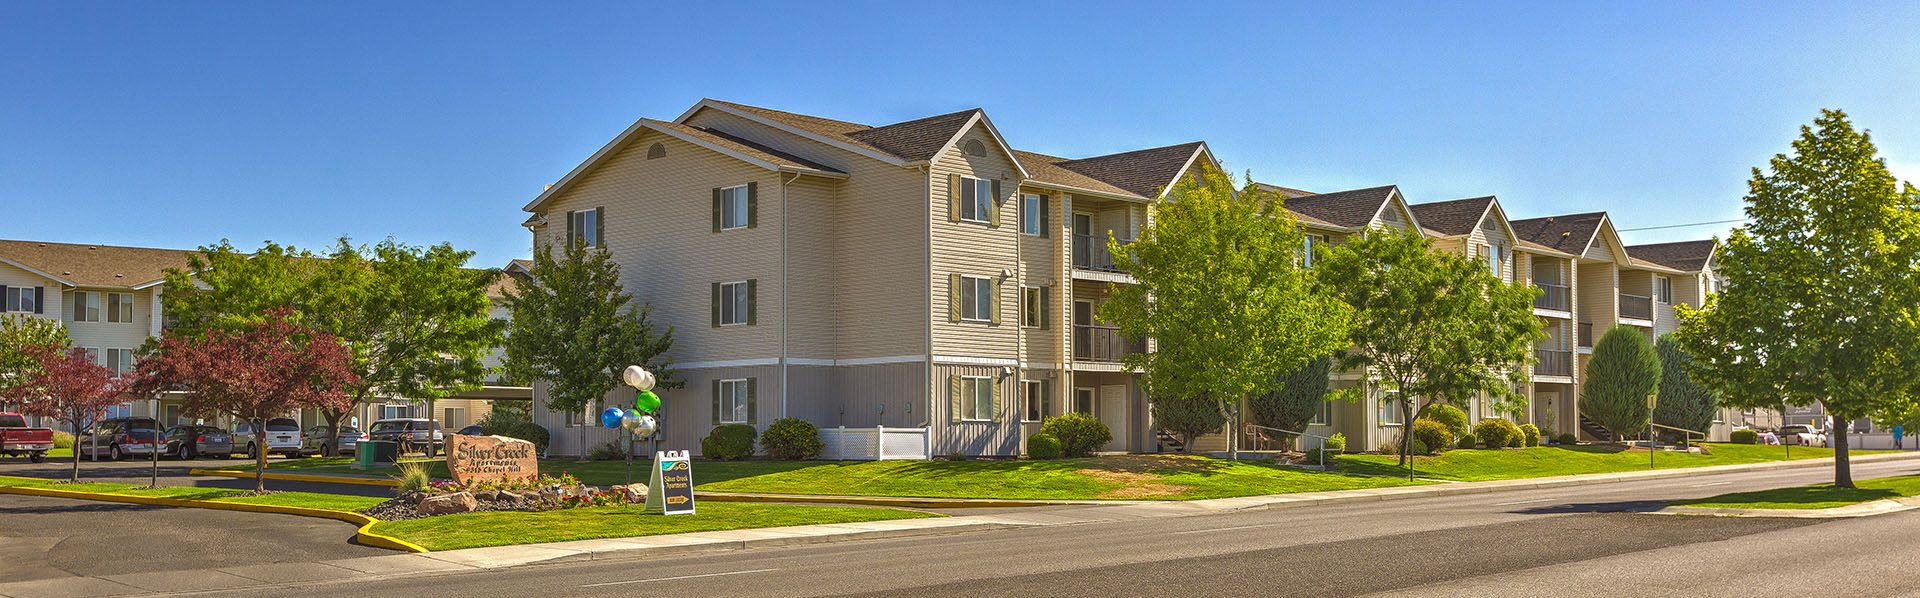 Building view of Silver Creek Apts in Pasco, WA 99301